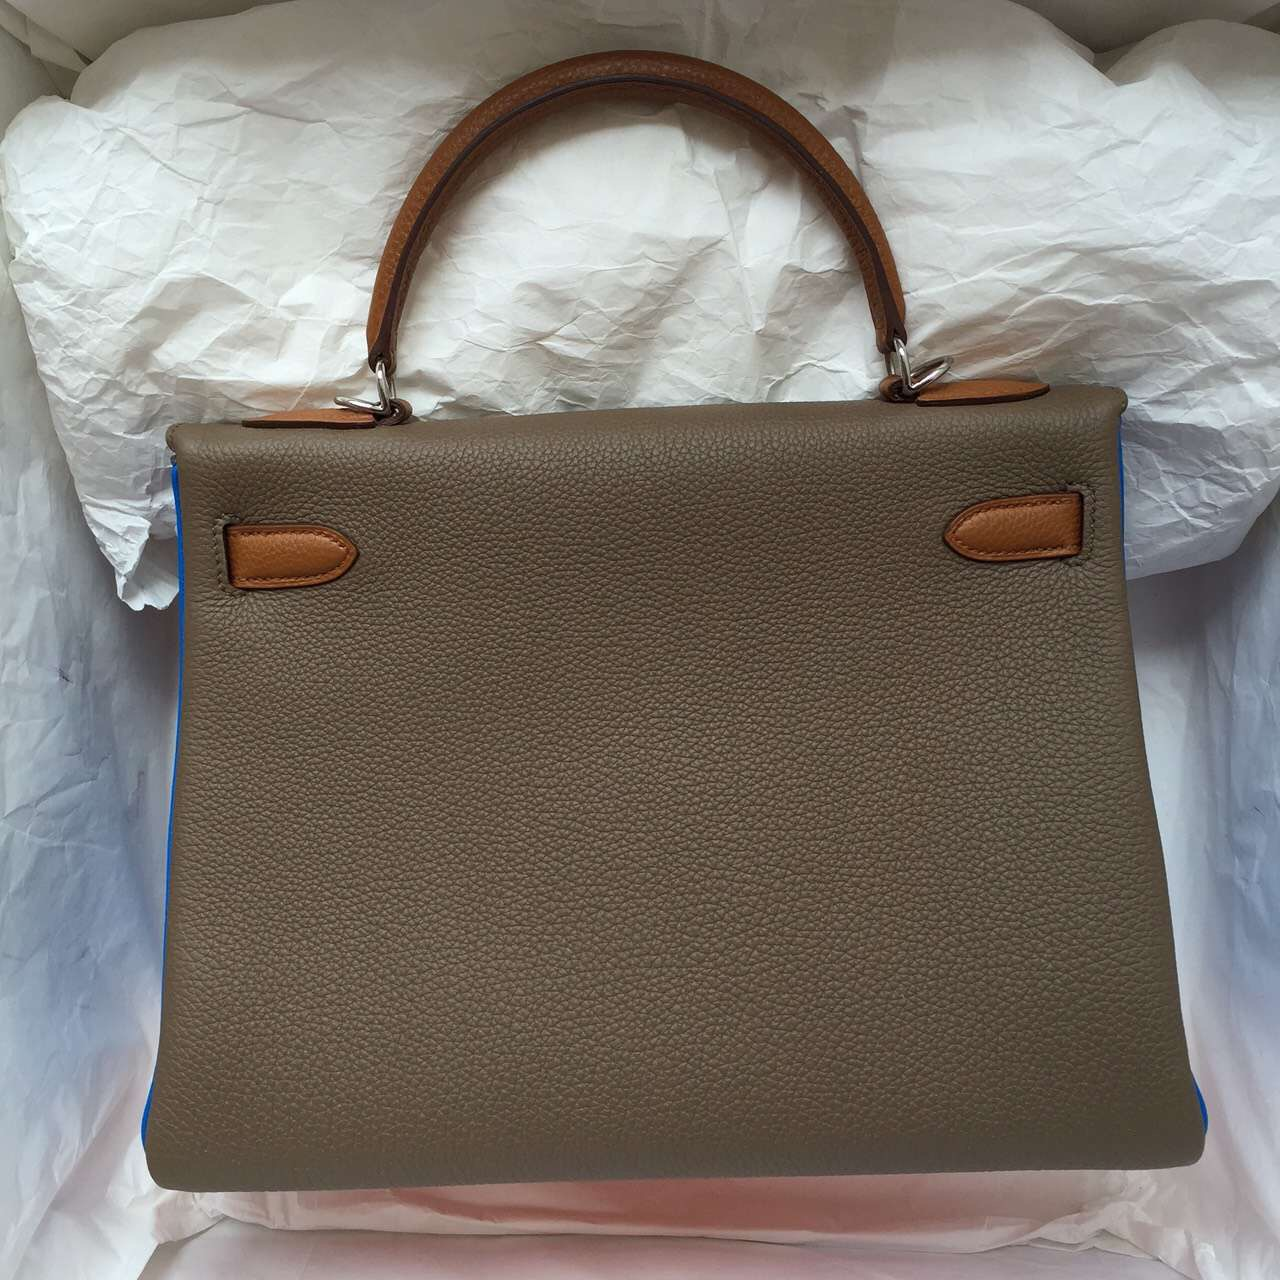 Sale Hermes Color-blocking Togo Leather Kelly Bag 32CM Elegant Women's Handbag